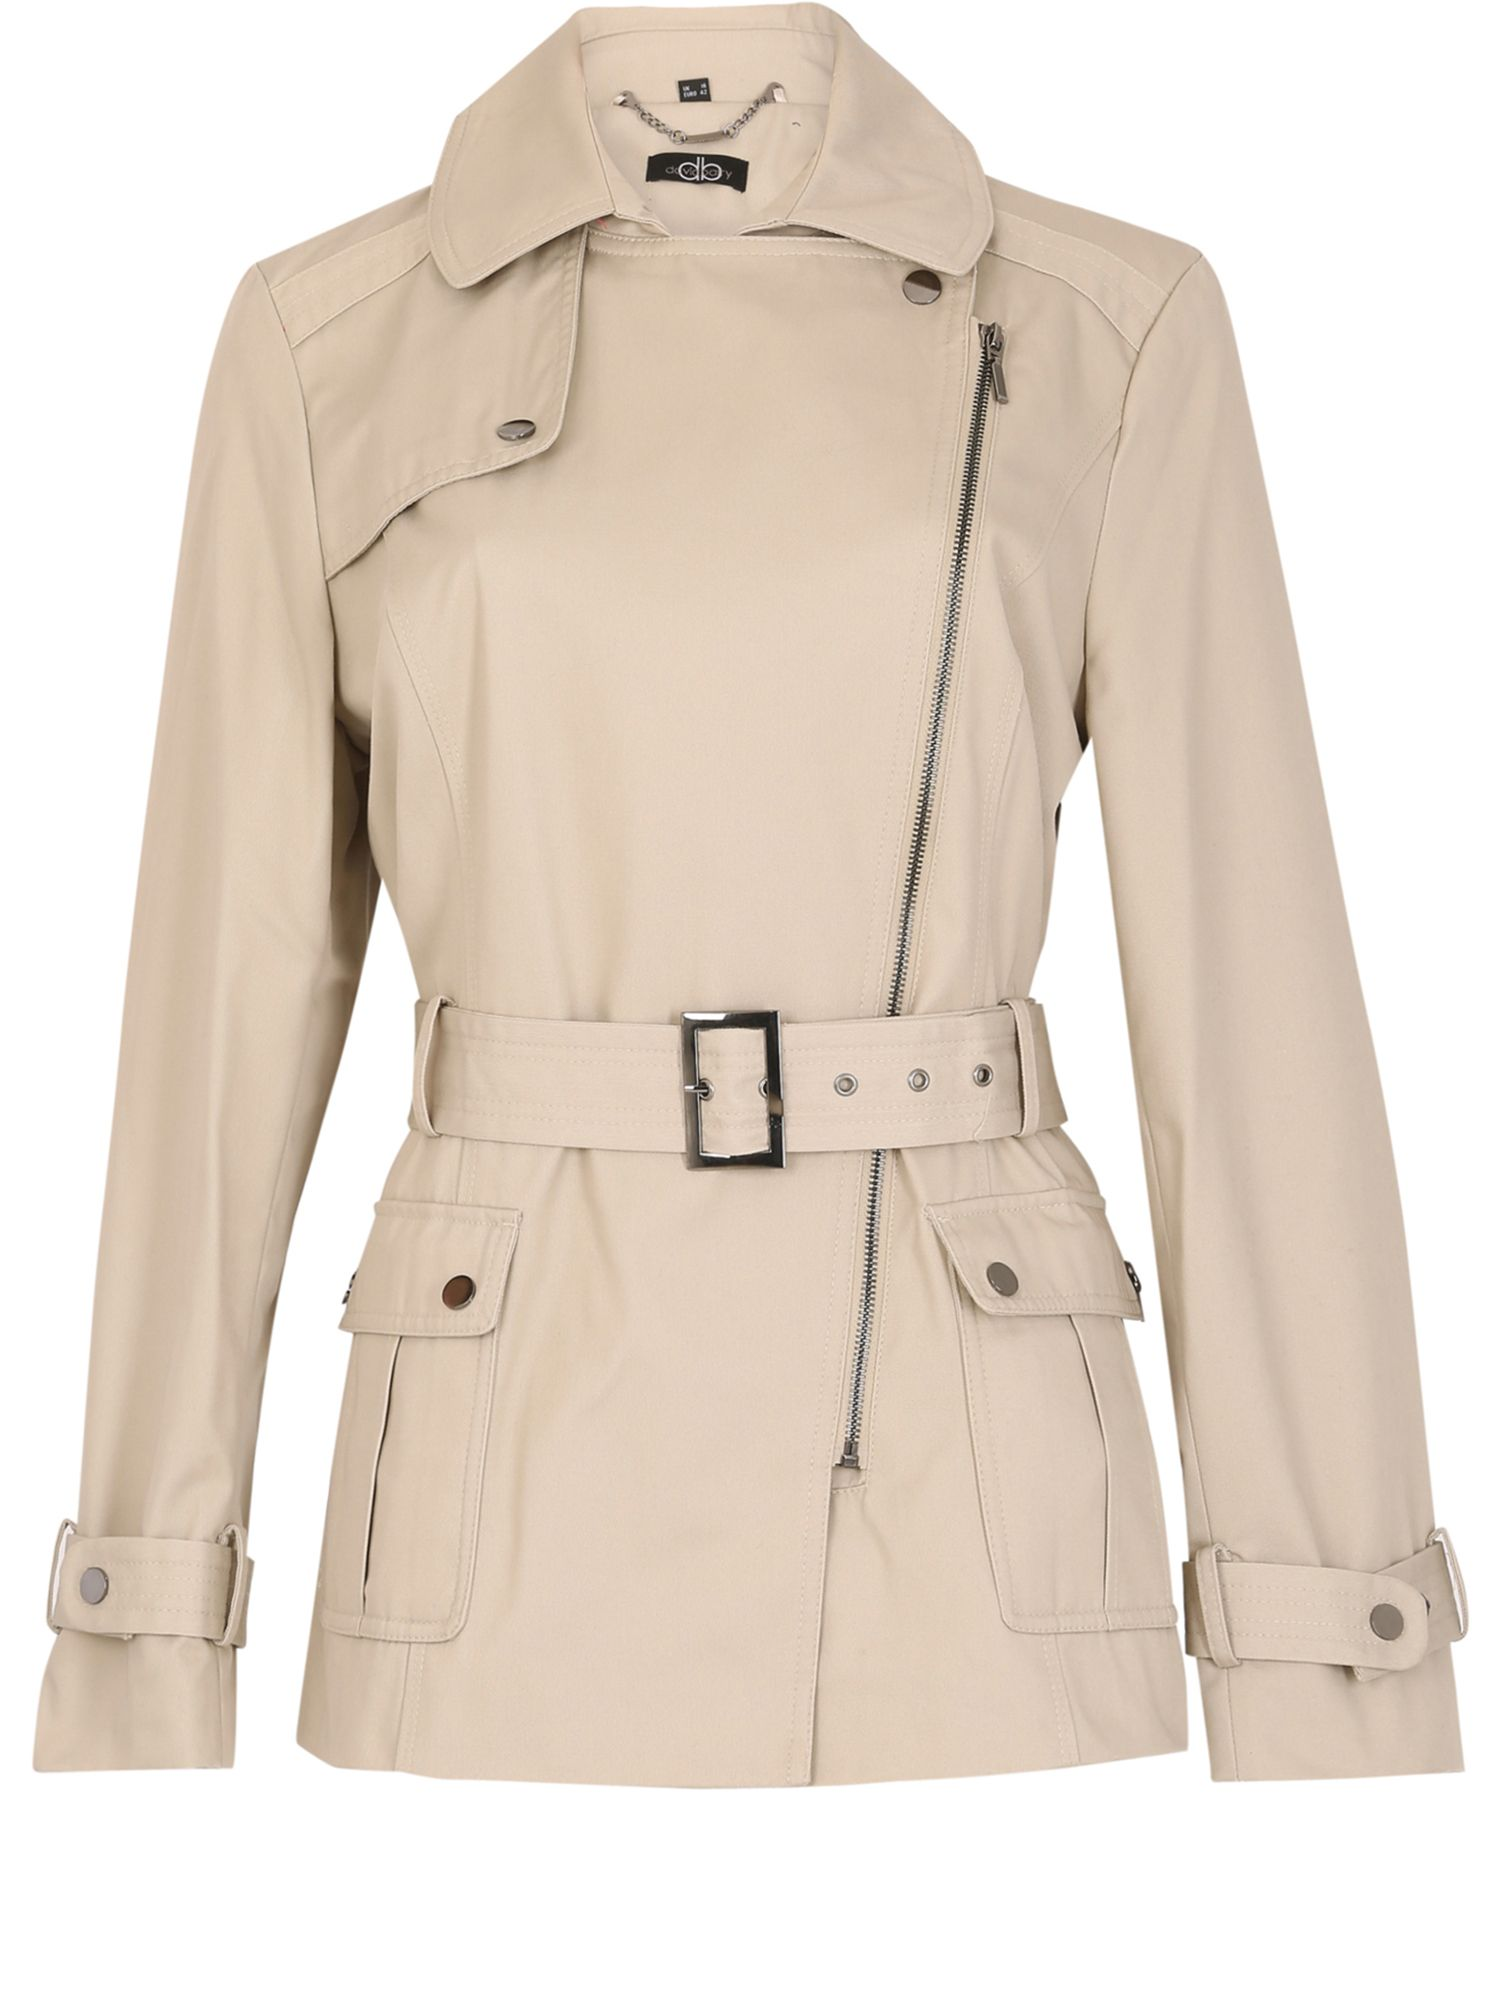 David Barry Short Rain Jacket, Cream